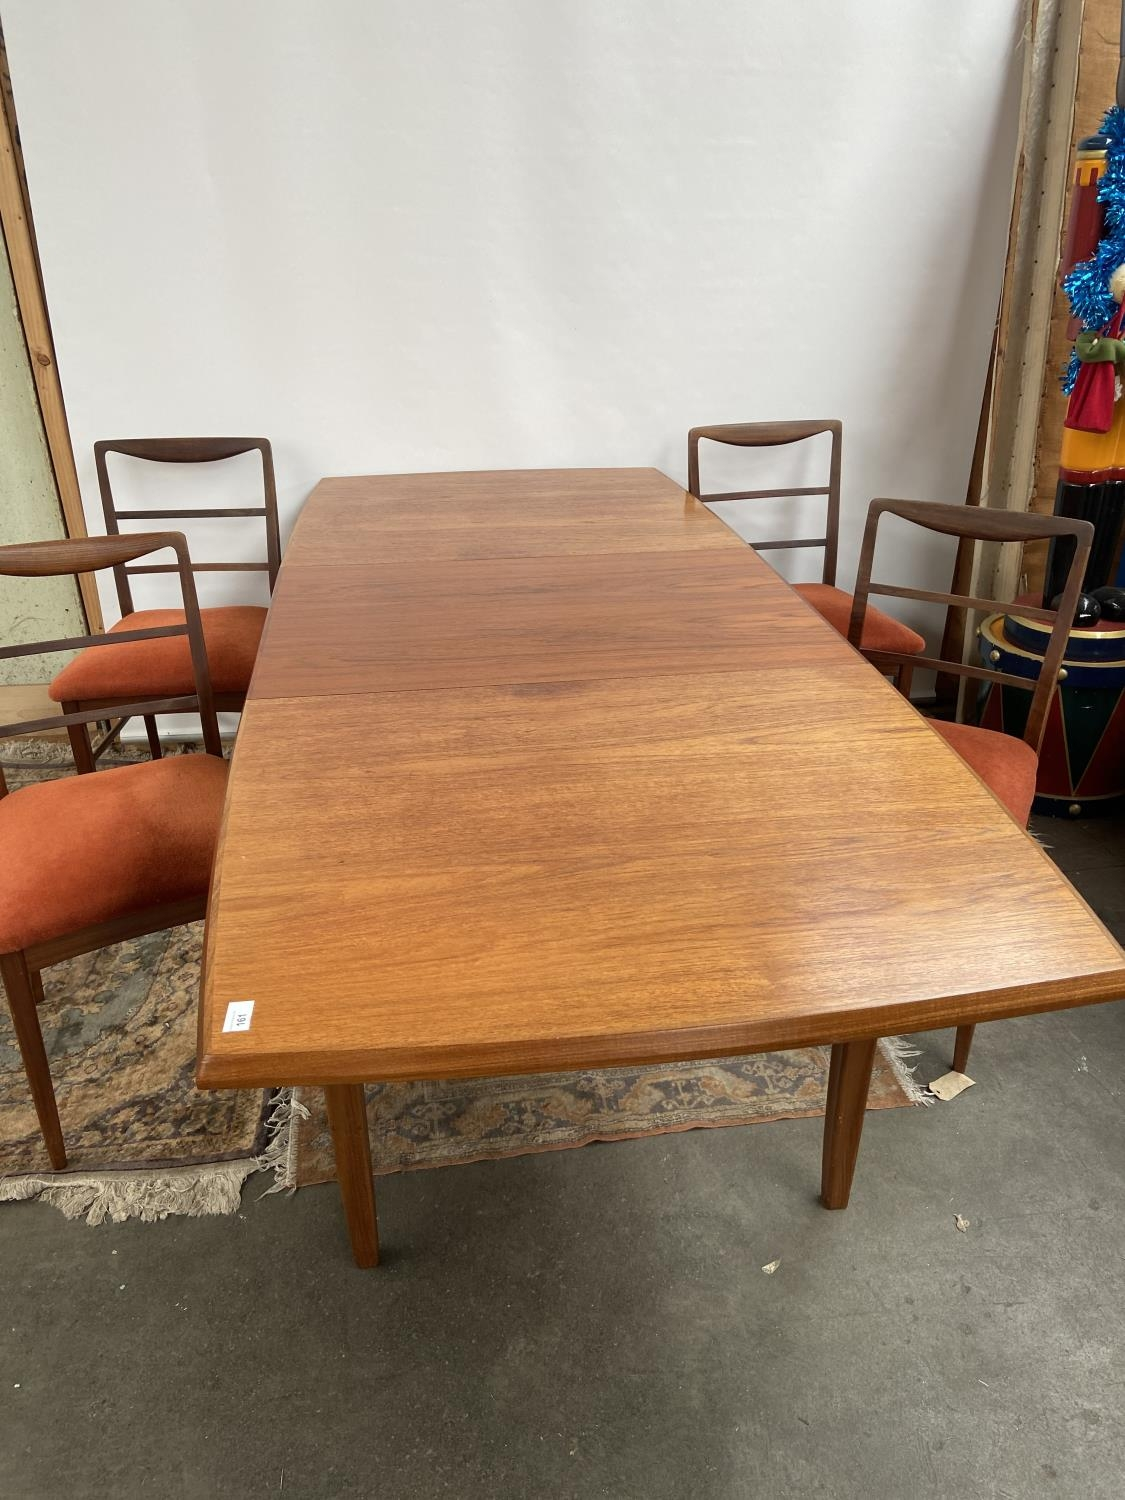 A Retro mid century teak dining table and four matching chairs produced by Vanson. [Table extended